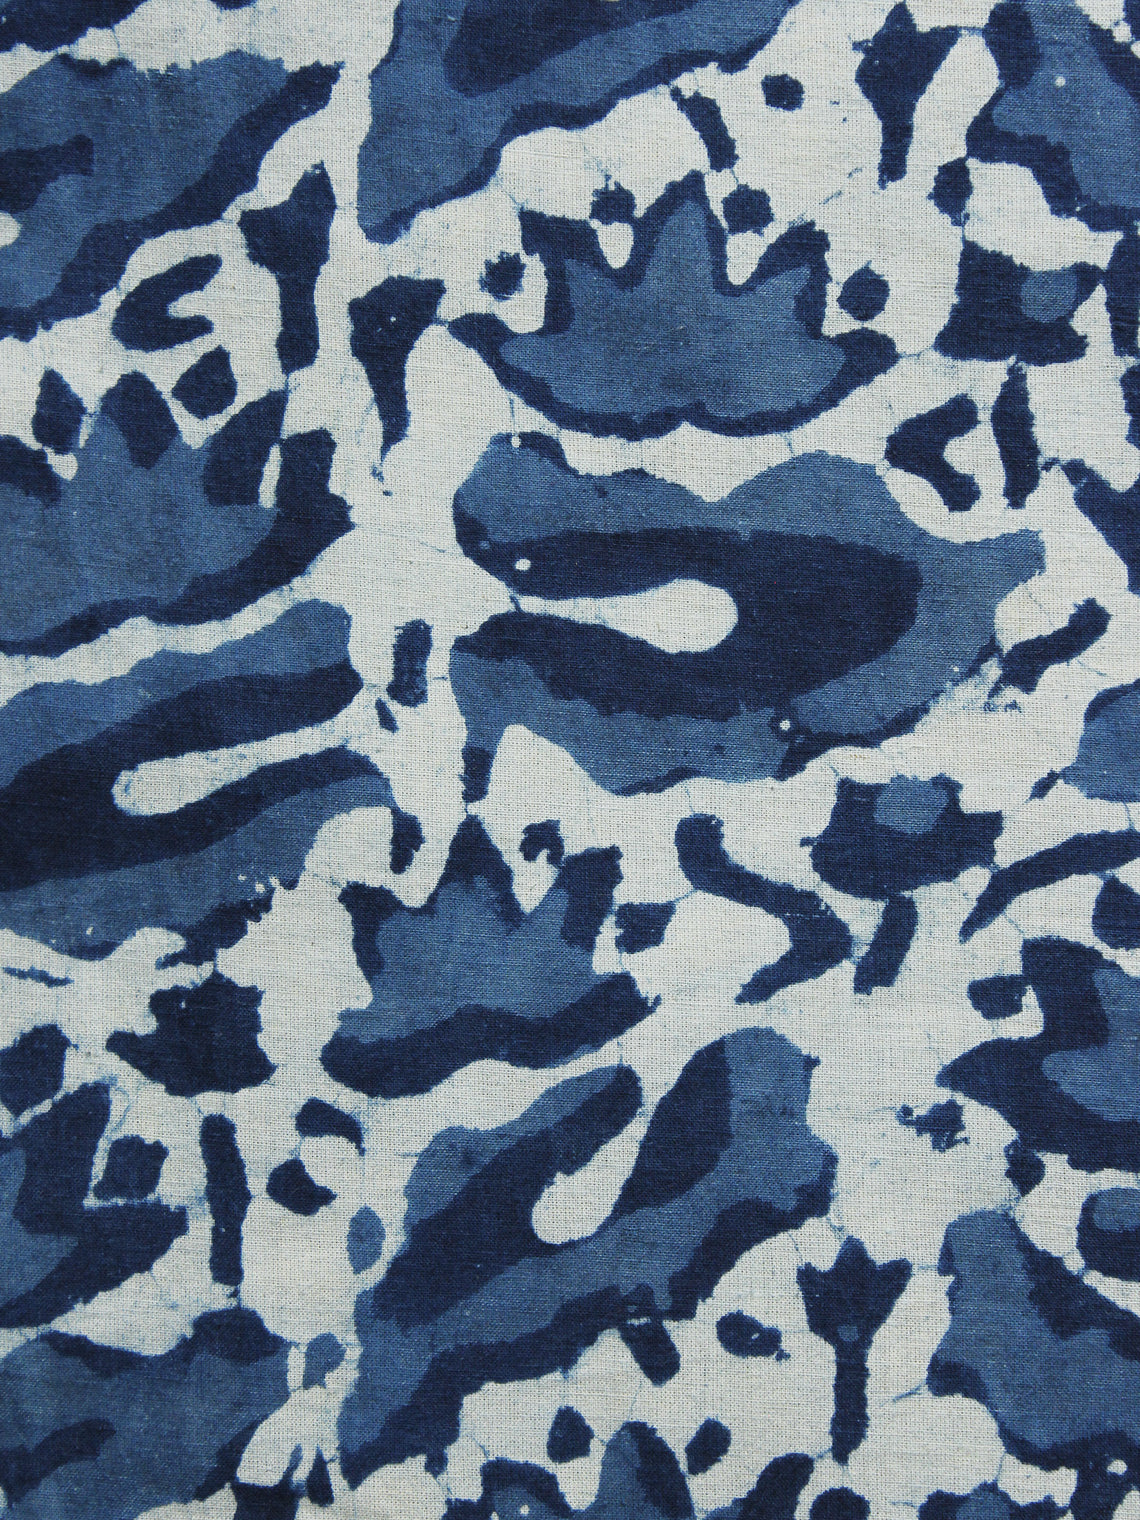 Indigo Ivory Hand Block Printed Cotton Fabric Per Meter - F001F1064